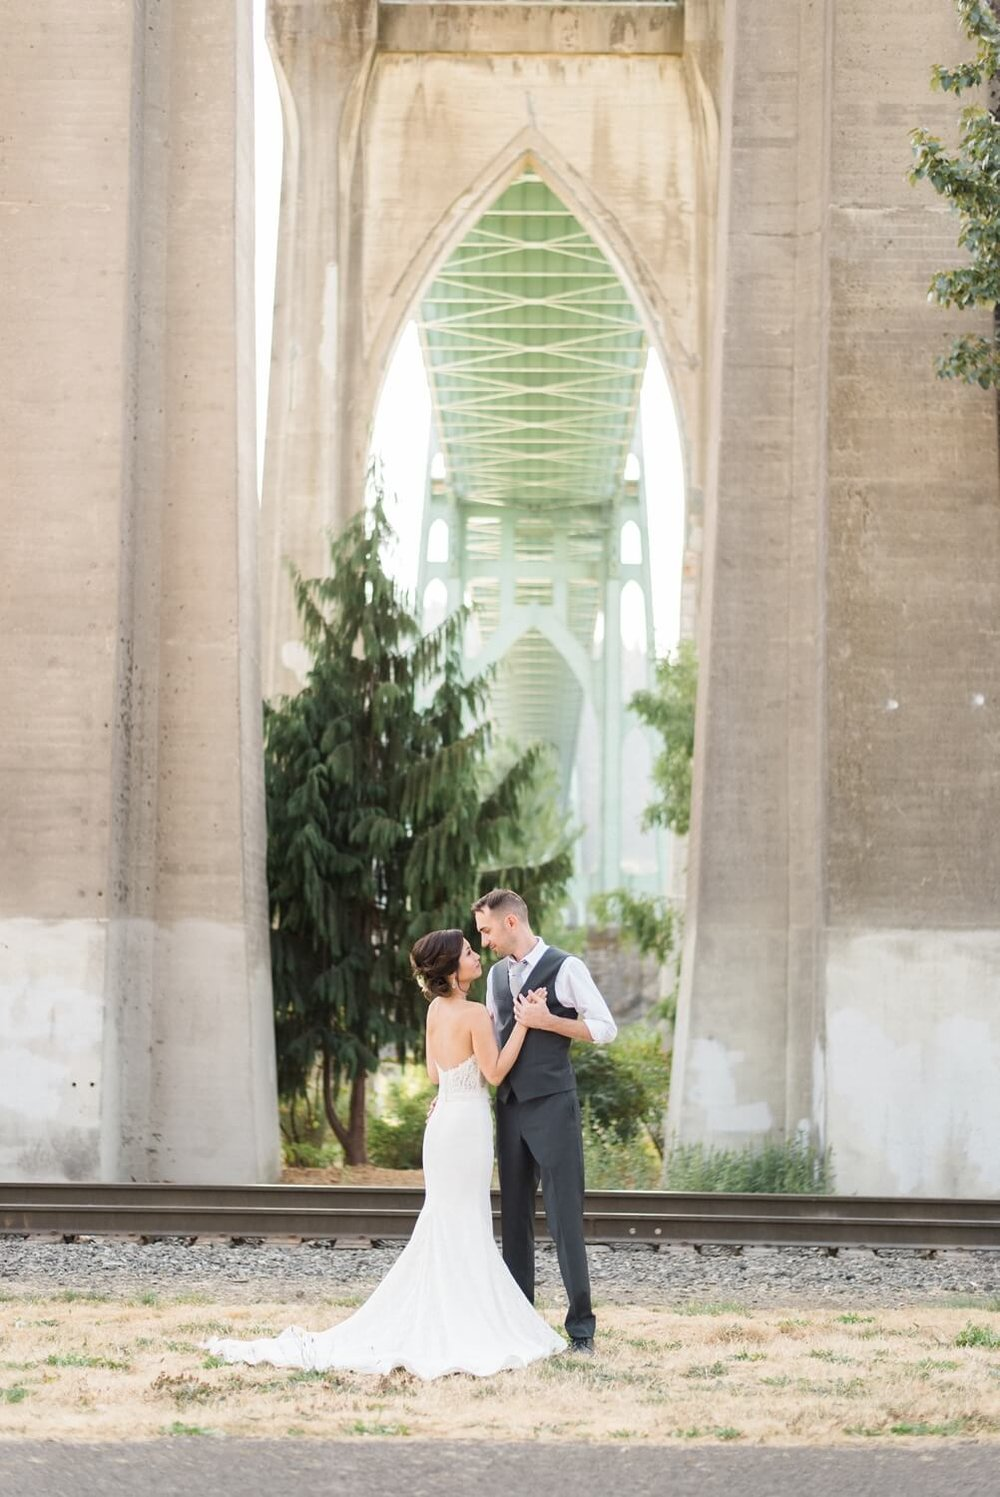 cathedral-park-wedding-urban-studio-portland-shelley-marie-photo-147_cr.jpg